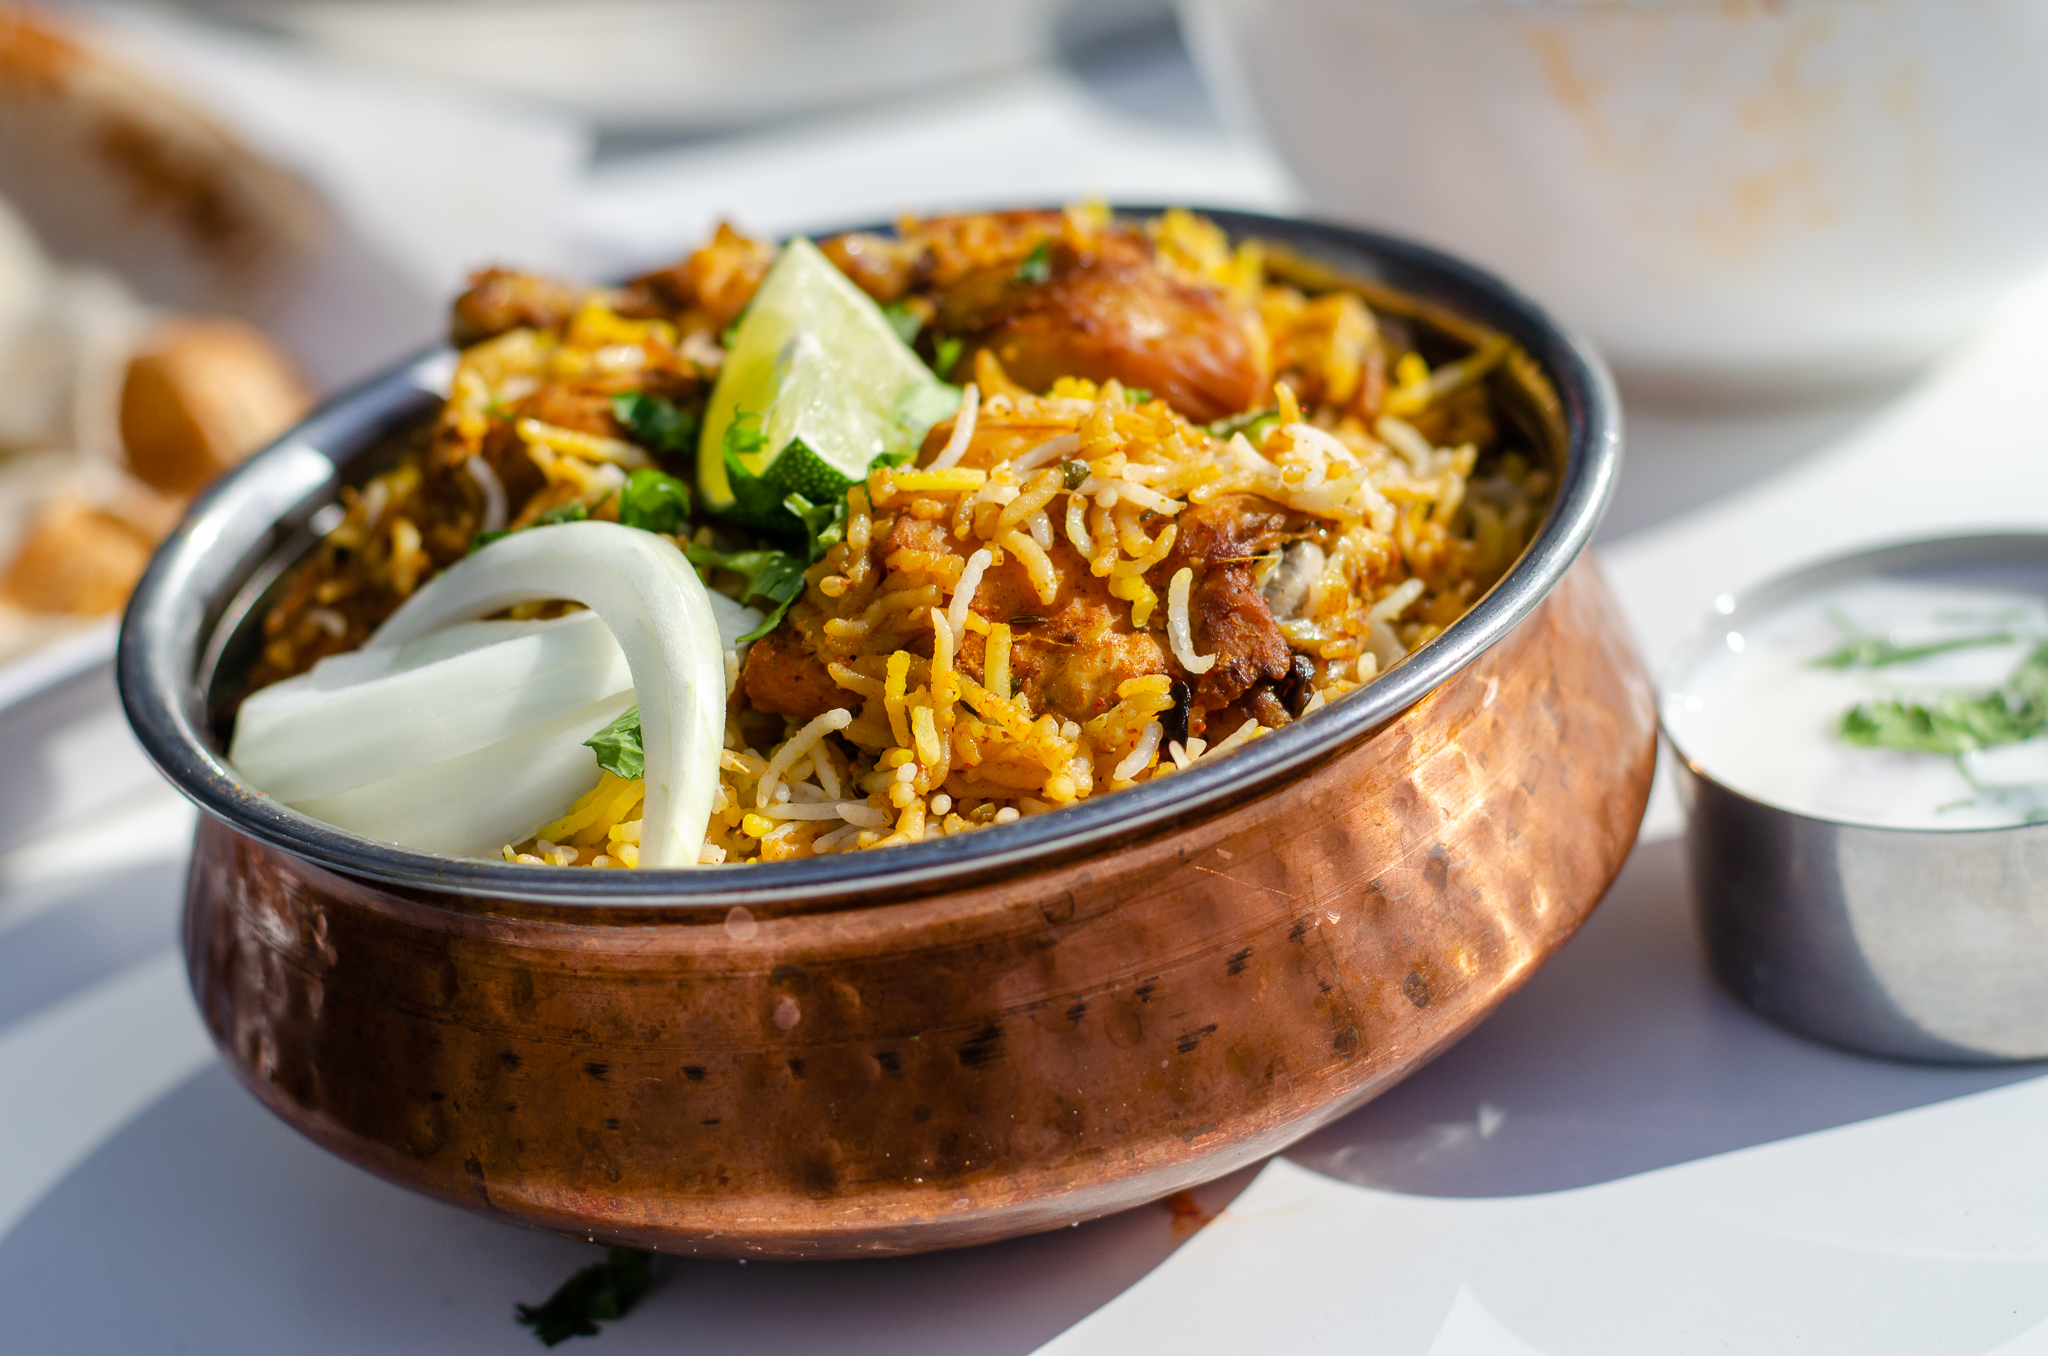 Chicken Biryani from India Paradise in Windsor, Ontario.